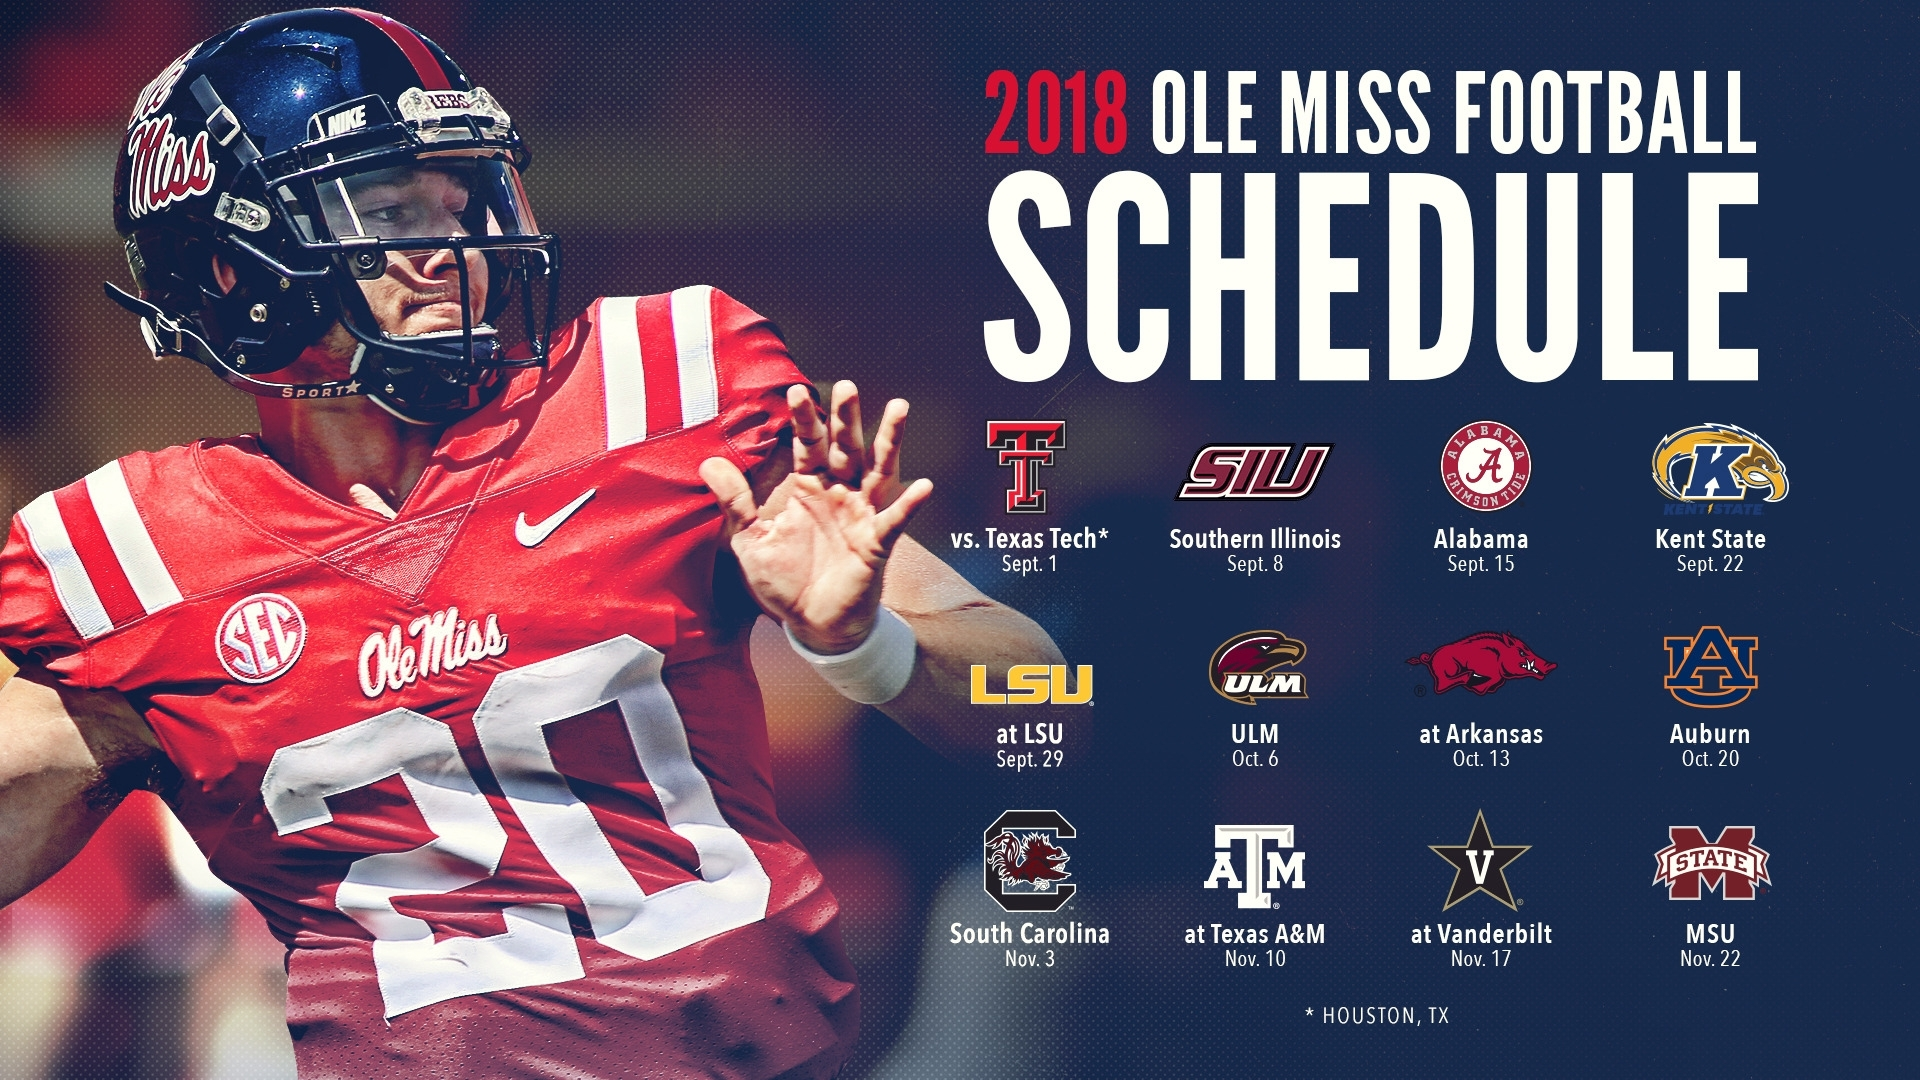 Ole Miss Football Announces 2018 Schedule - Ole Miss Athletics